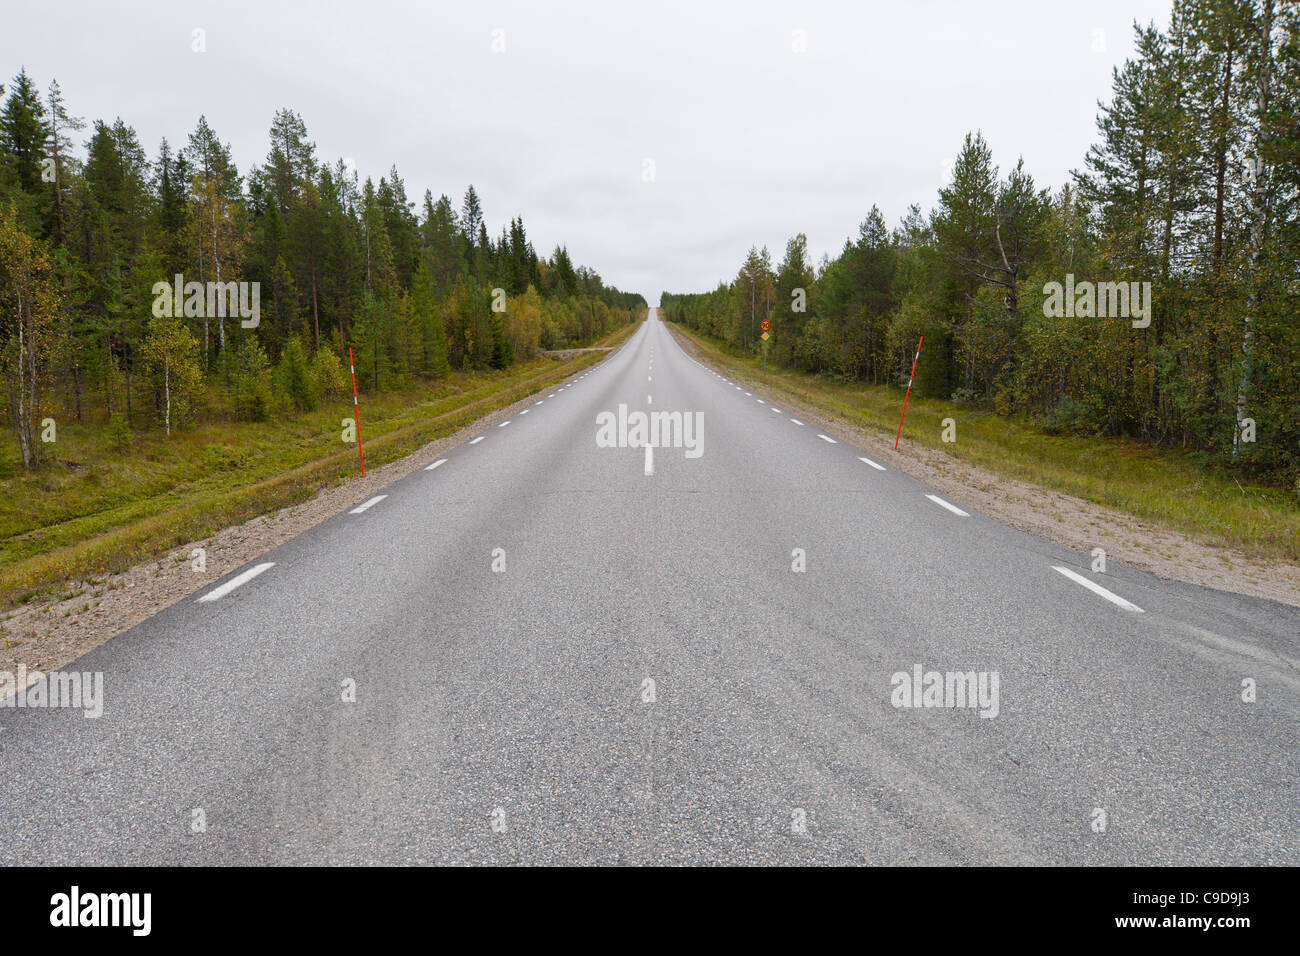 Straight road disappearing in the horizon. - Stock Image